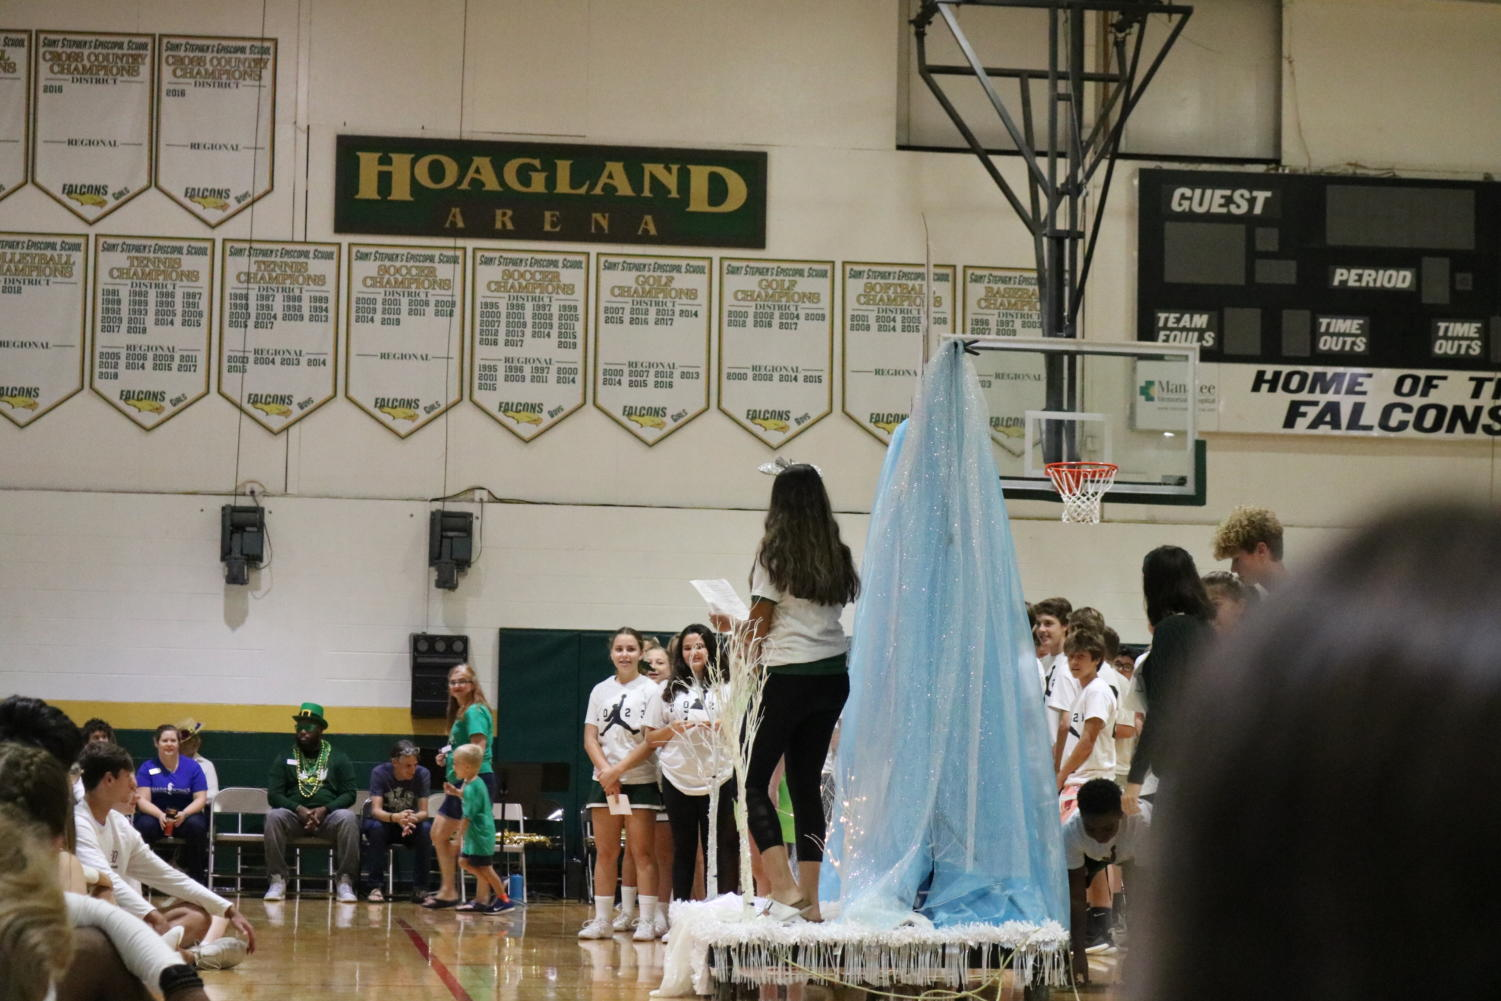 Spirit+week+day+5+photo+gallery%3A+Float+and+Skit